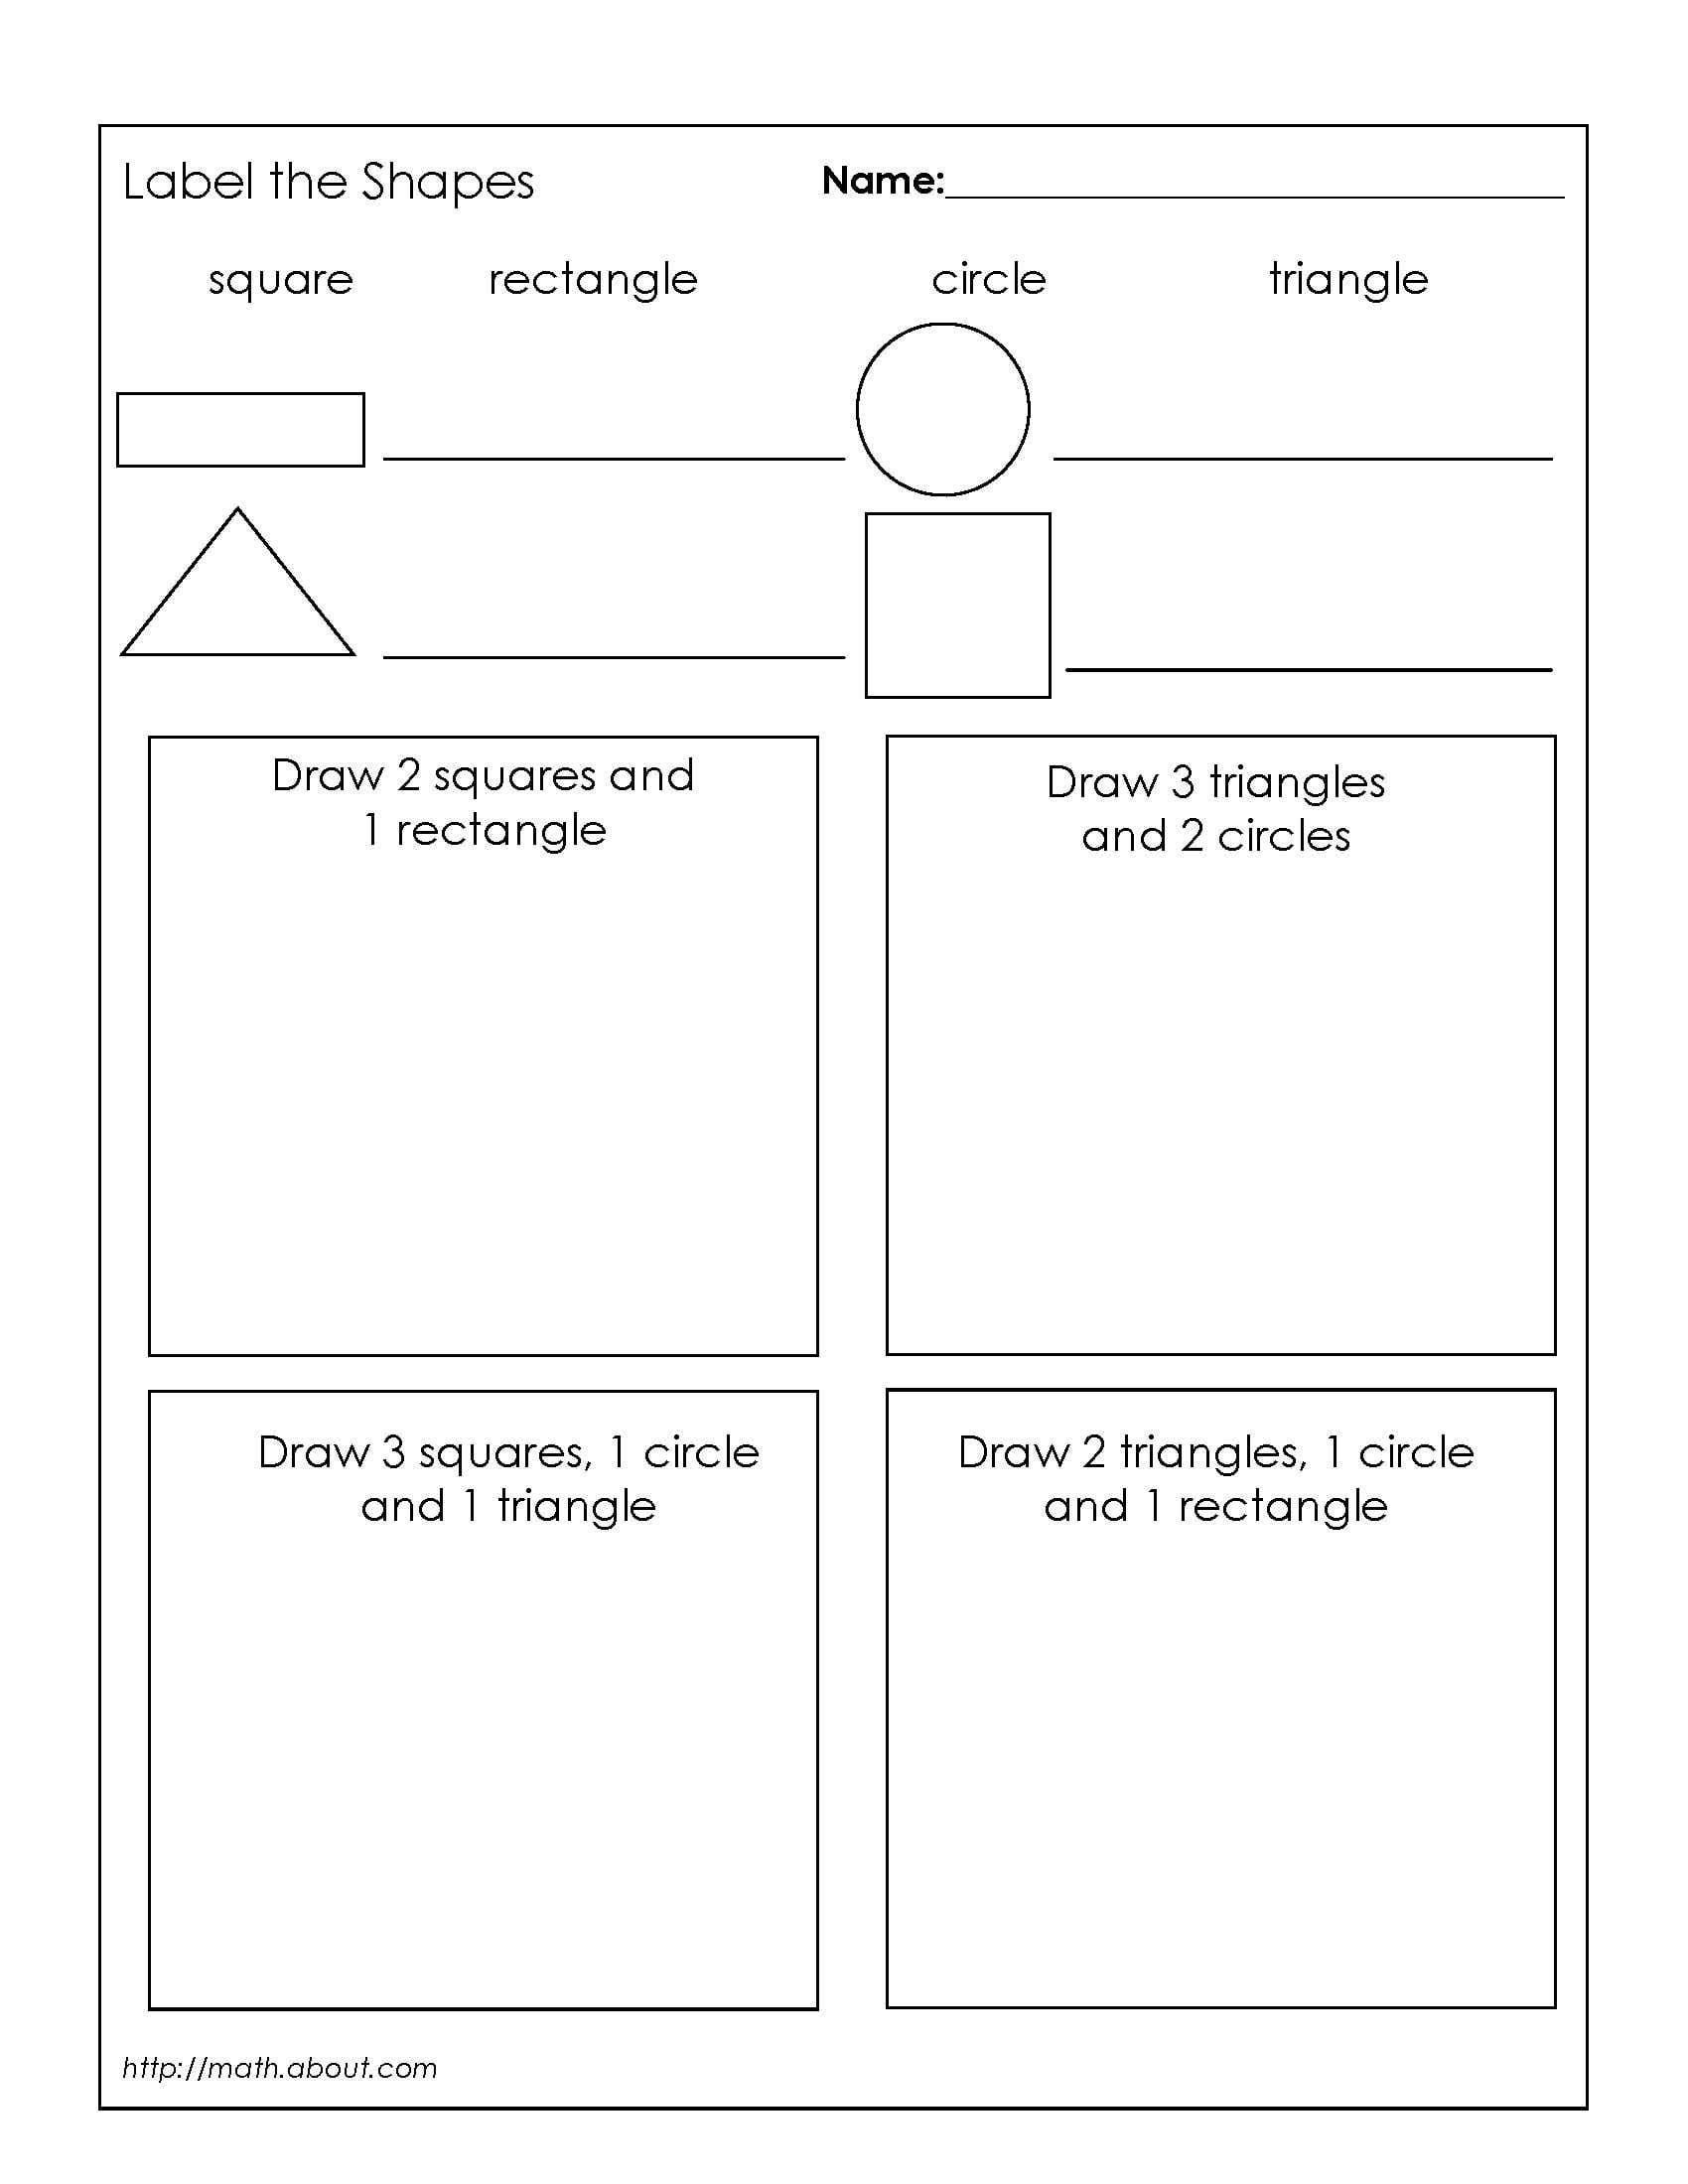 Classifying Quadrilaterals Worksheet